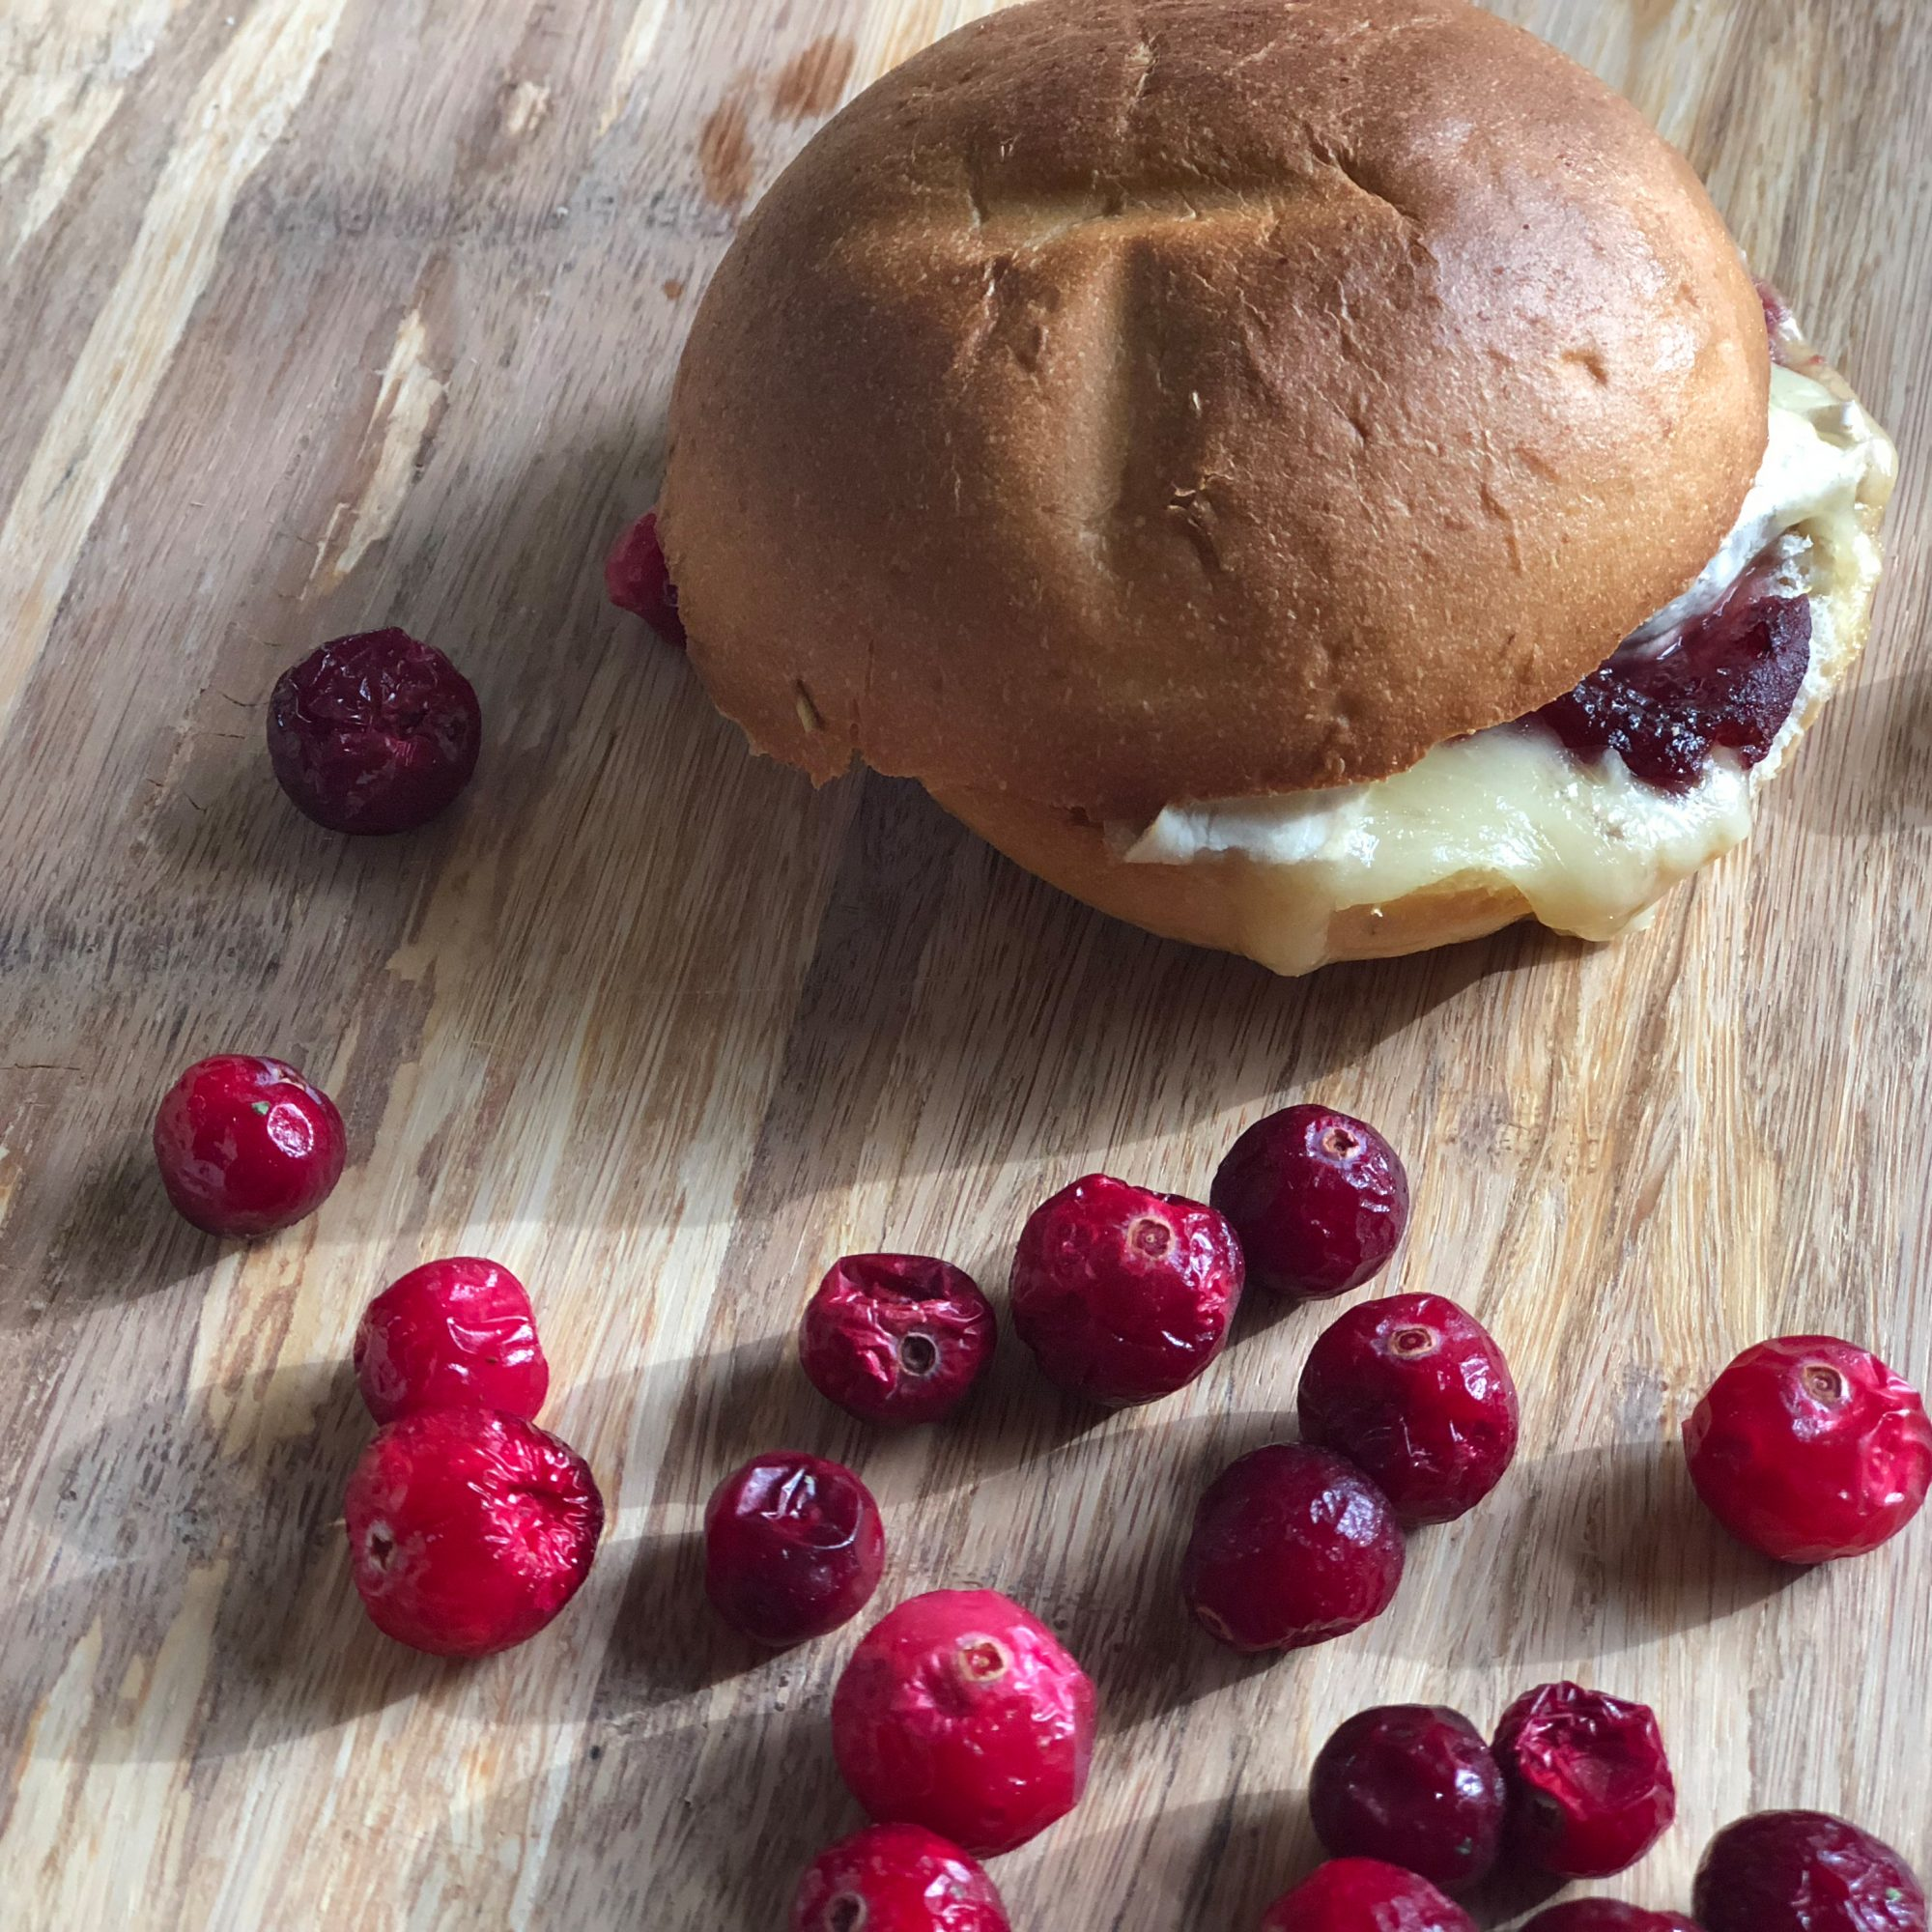 Vegetarian Brie and Cranberry Paninis on a wooden background